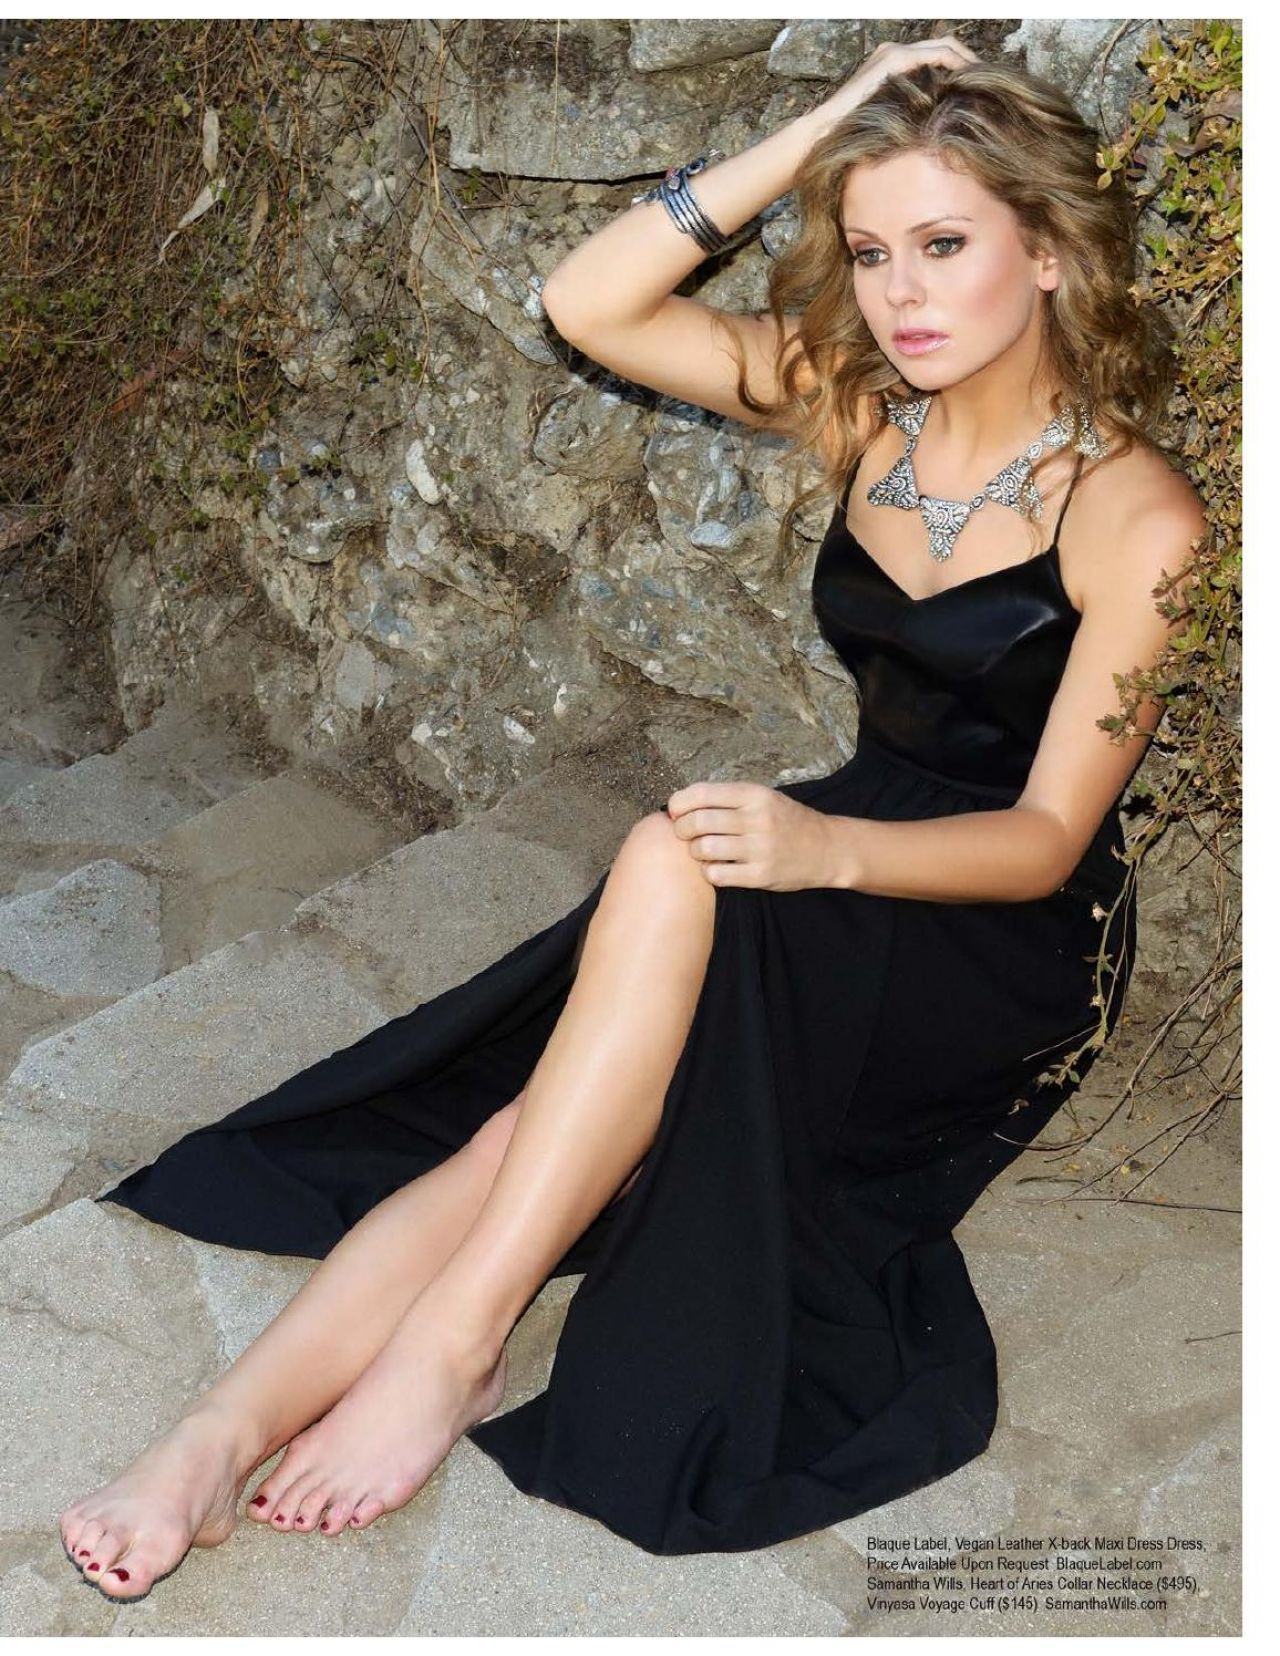 rose-mciver-regard-magazine-february-2014-issue_6 (jpeg image